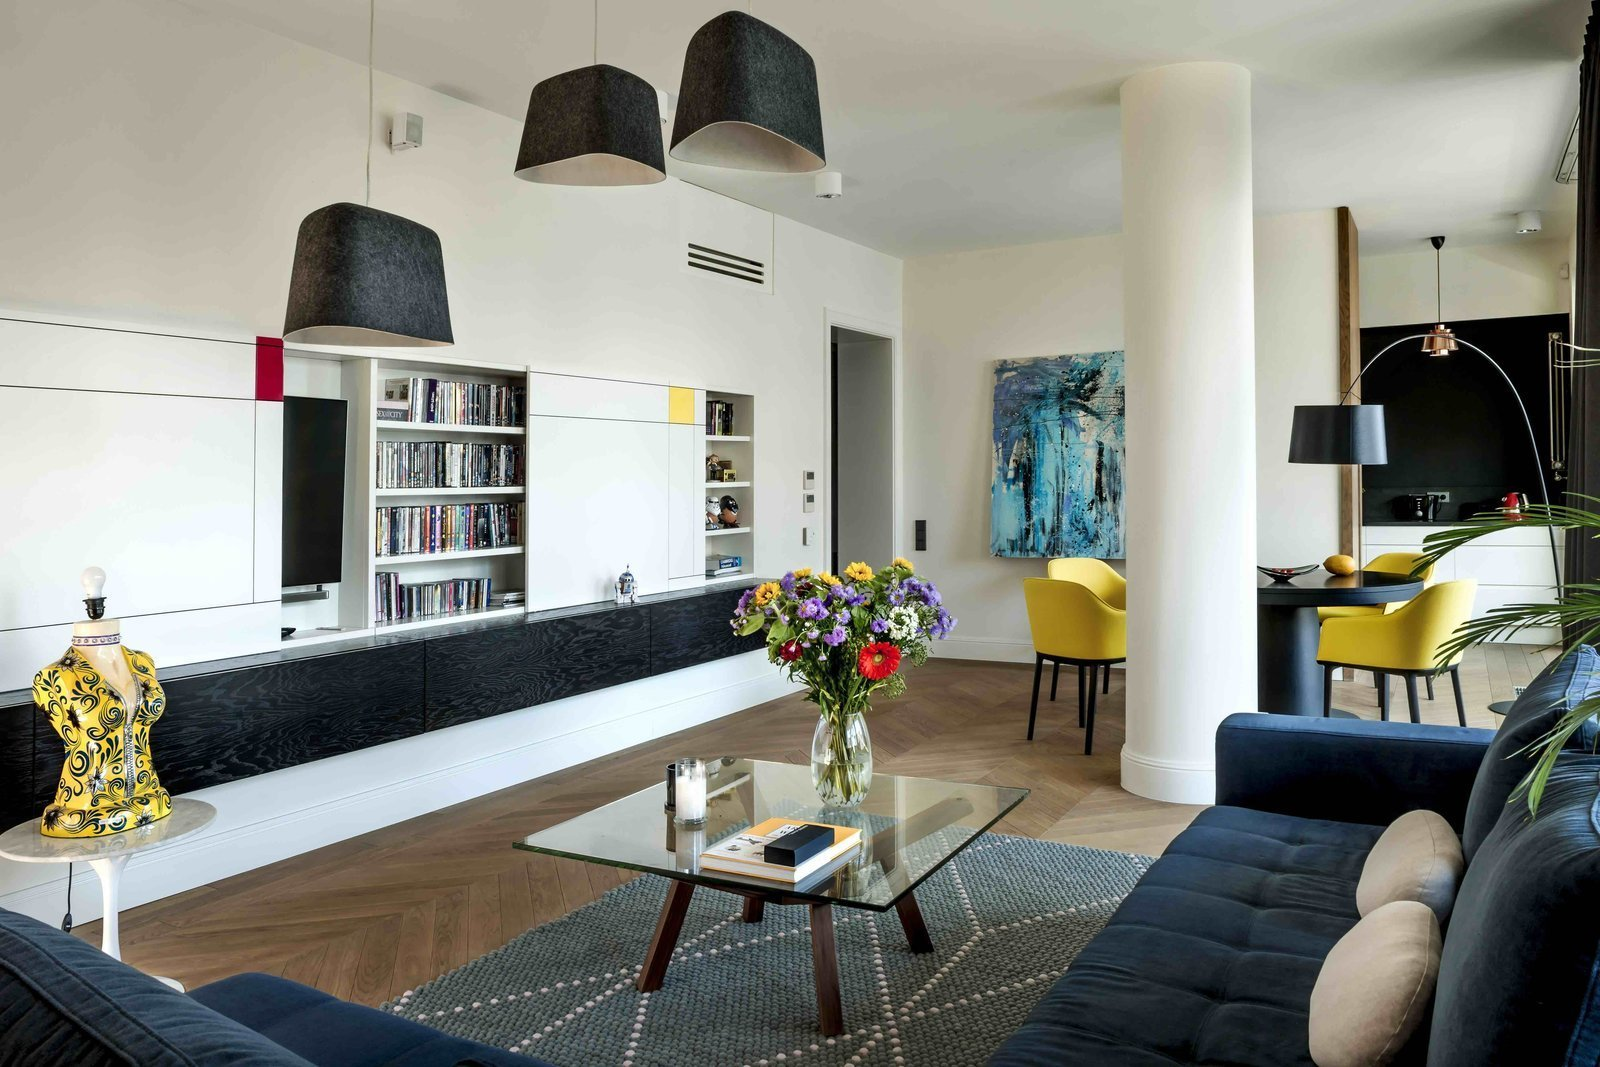 Living Room, Ceiling Lighting, Pendant Lighting, Sectional, and Coffee Tables  Photo 4 of 12 in Filled With Color and Pattern, This Eclectic Apartment Brings a Little Madrid to Warsaw